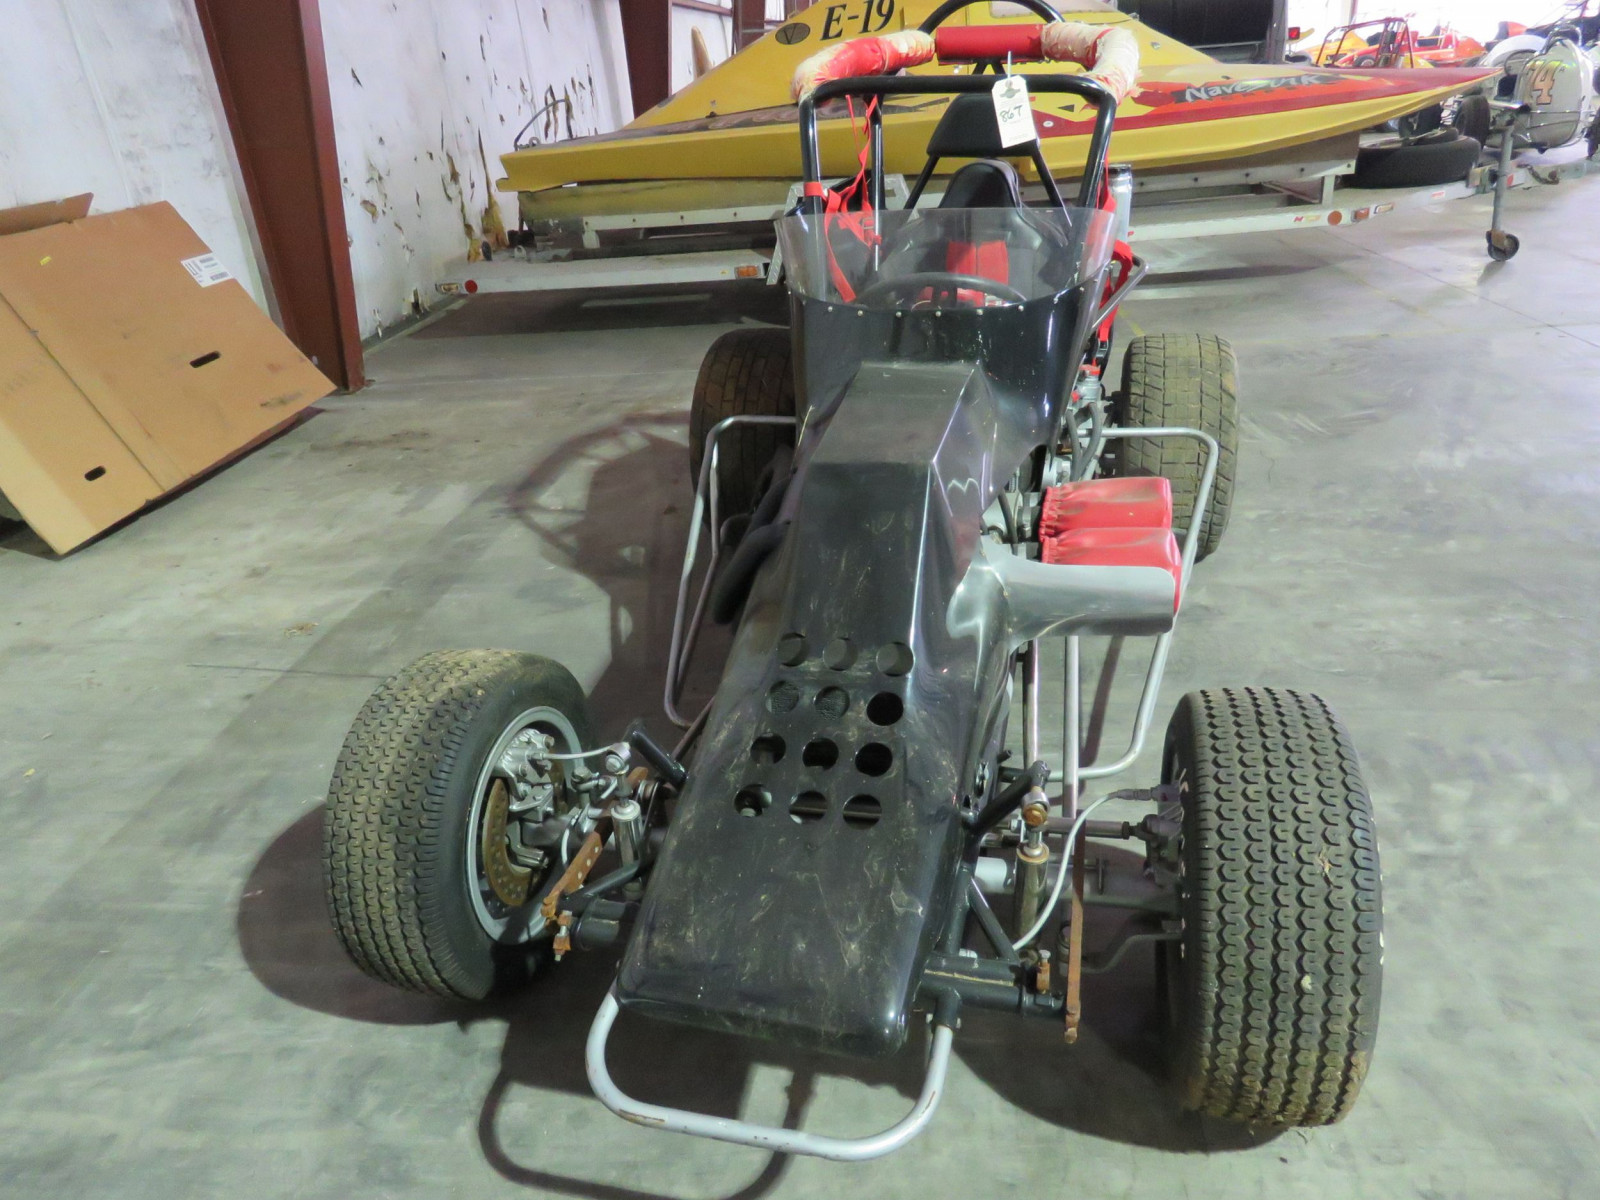 1970 Edmunds Sesco Midget Race Cart - Image 2